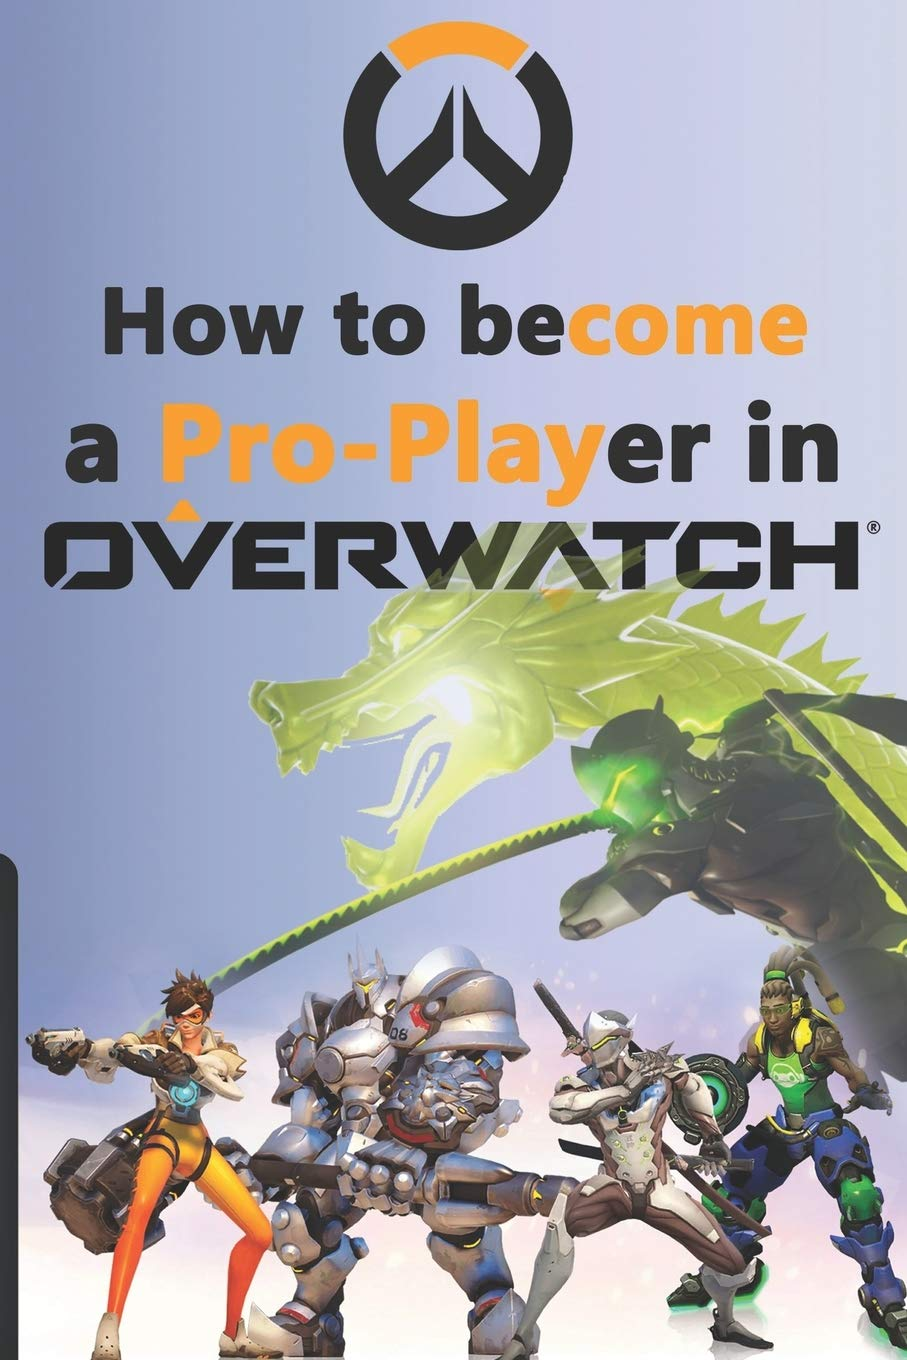 How to become a Pro-Player in Overwatch: Amazon.es: Pham, Minh Hoang: Libros en idiomas extranjeros